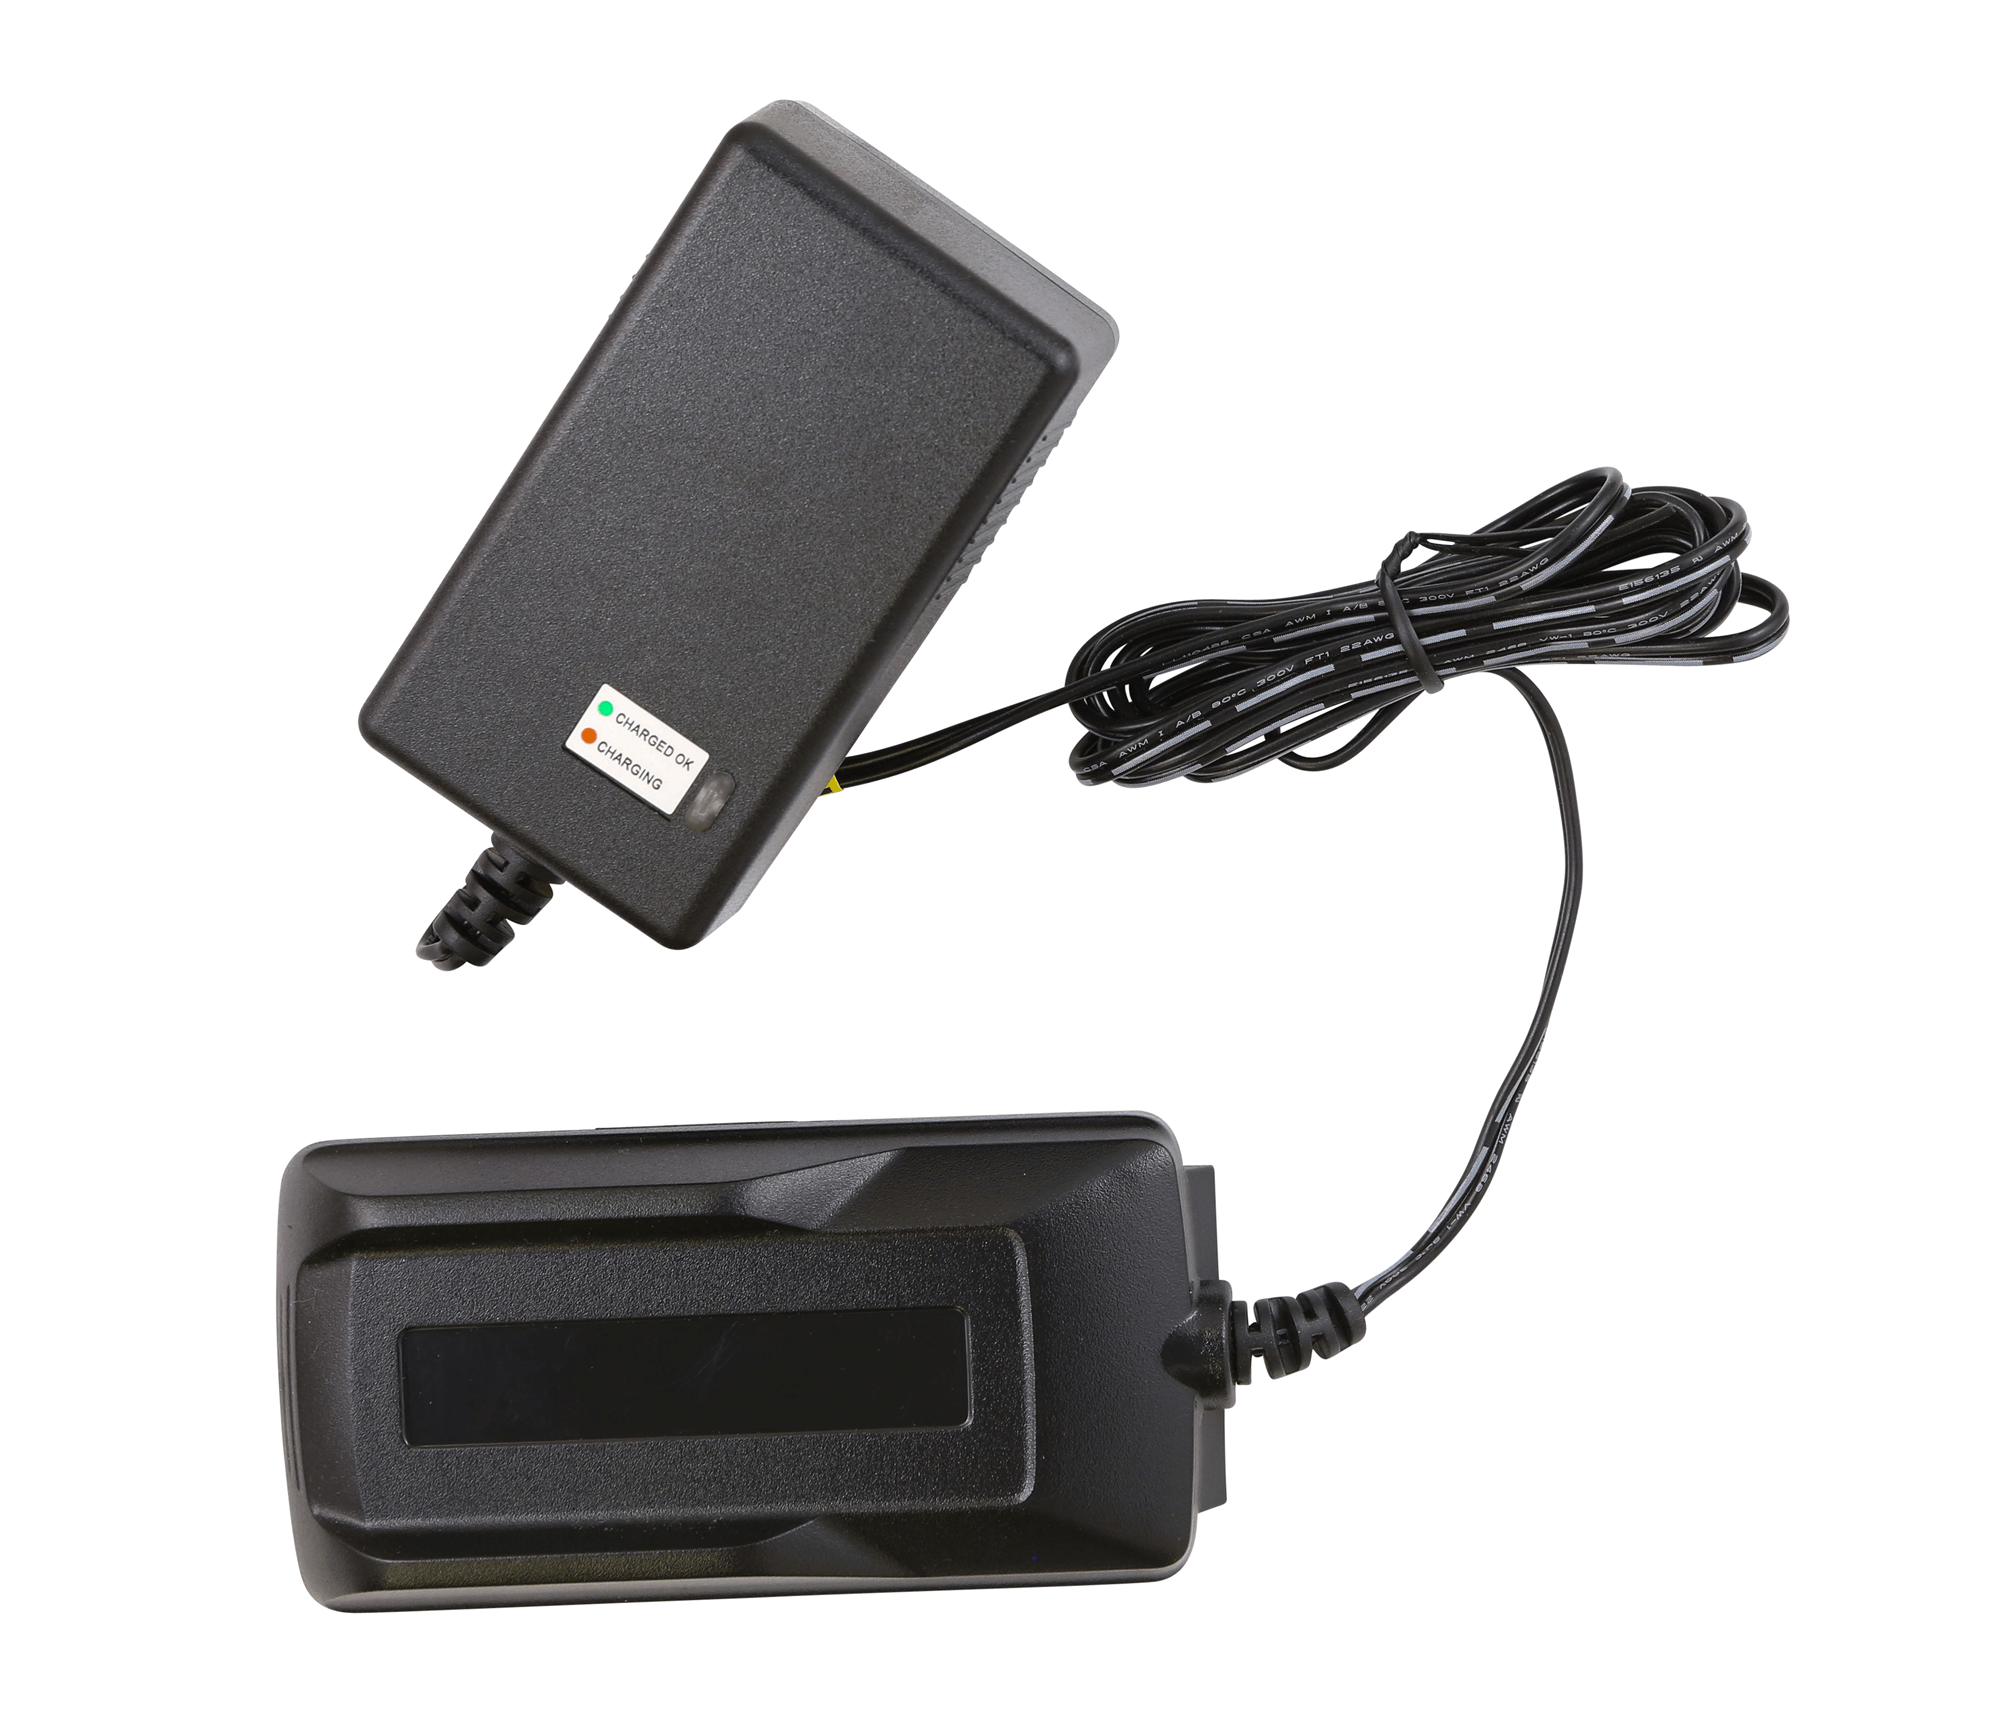 C120i Charger